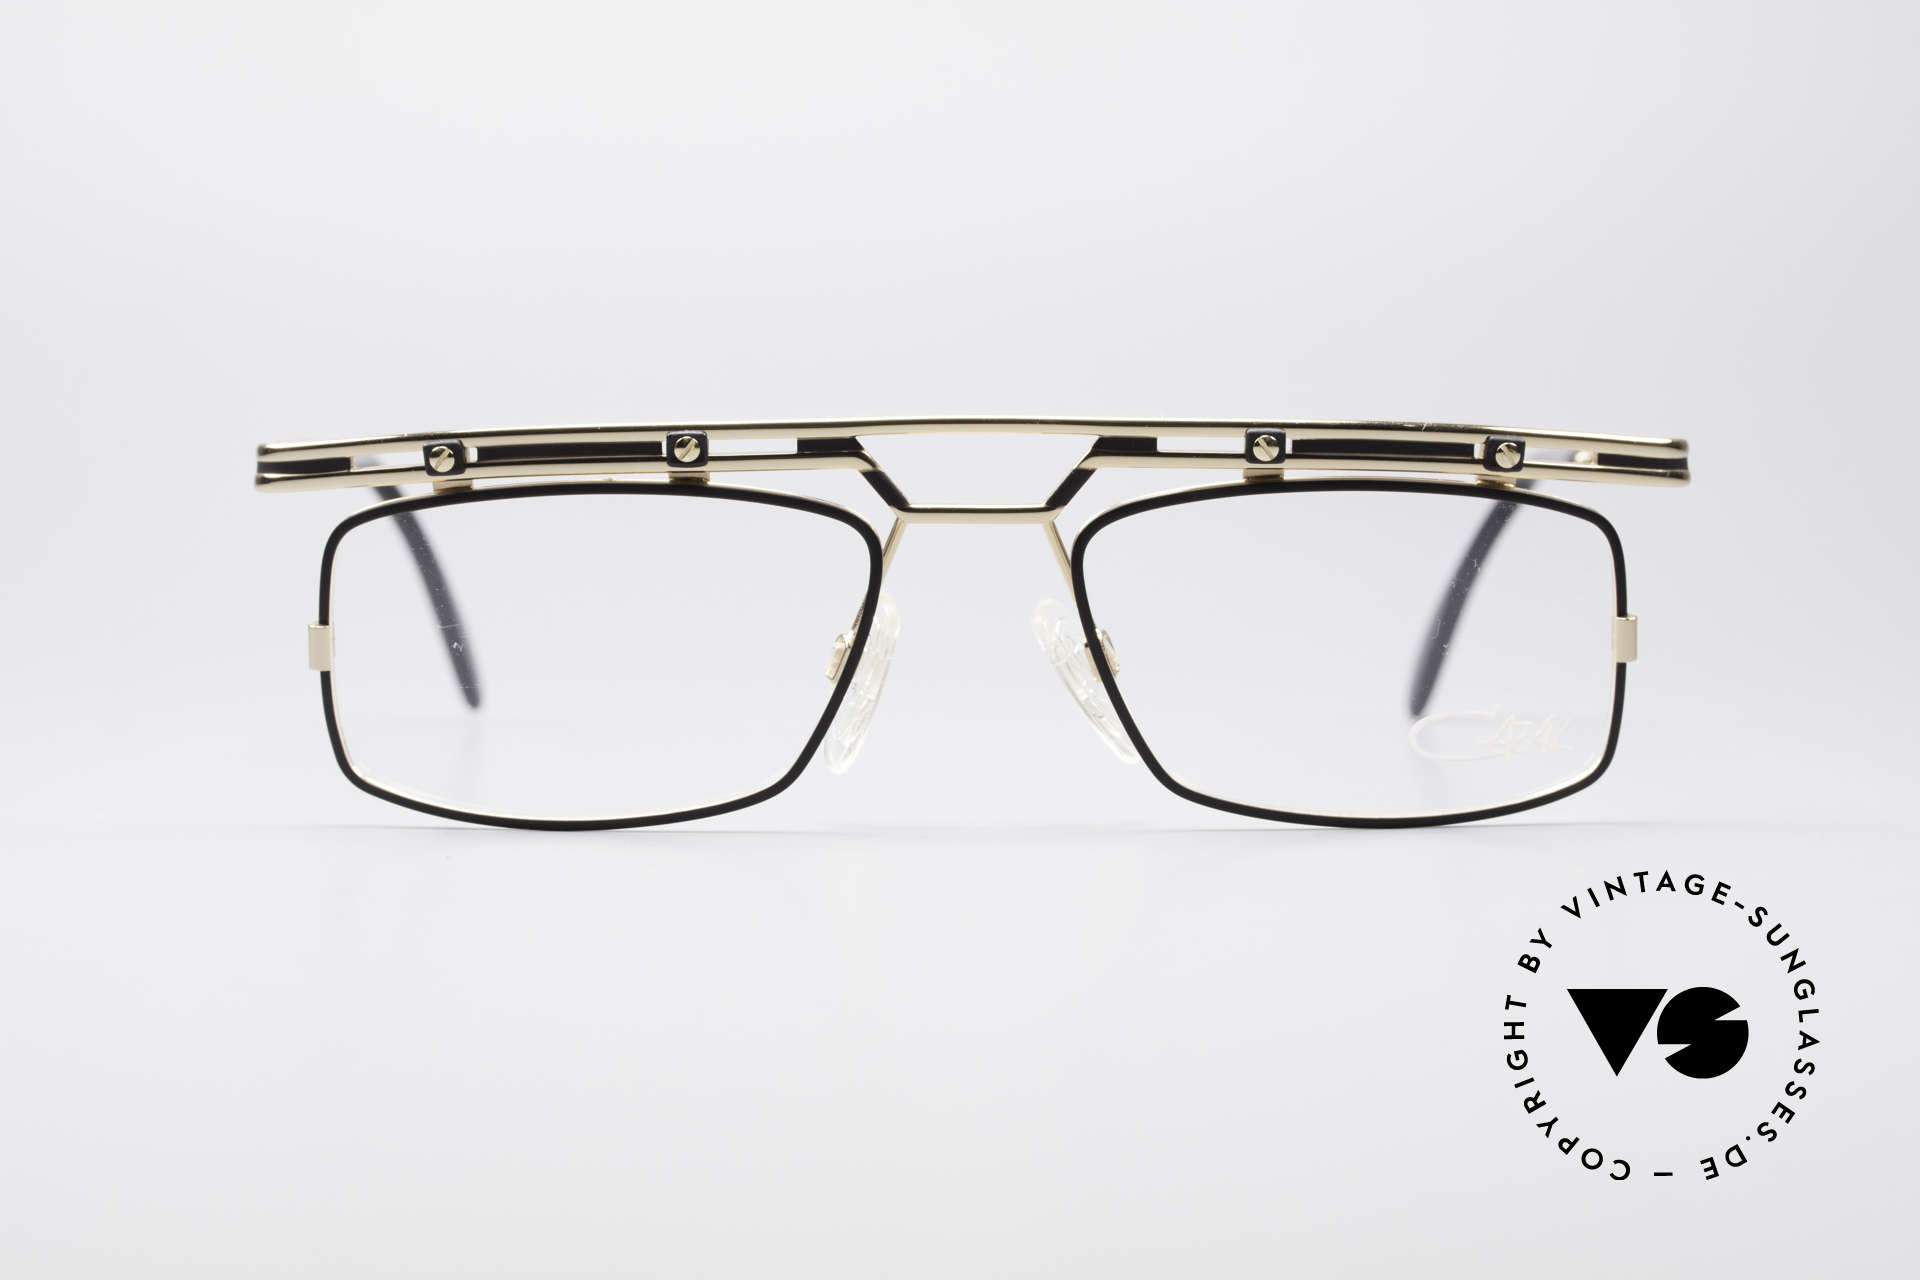 Cazal 975 Vintage 90's Designer Glasses, designer eyeglass-frame by Cari Zalloni (Mr. CAZAL), Made for Men